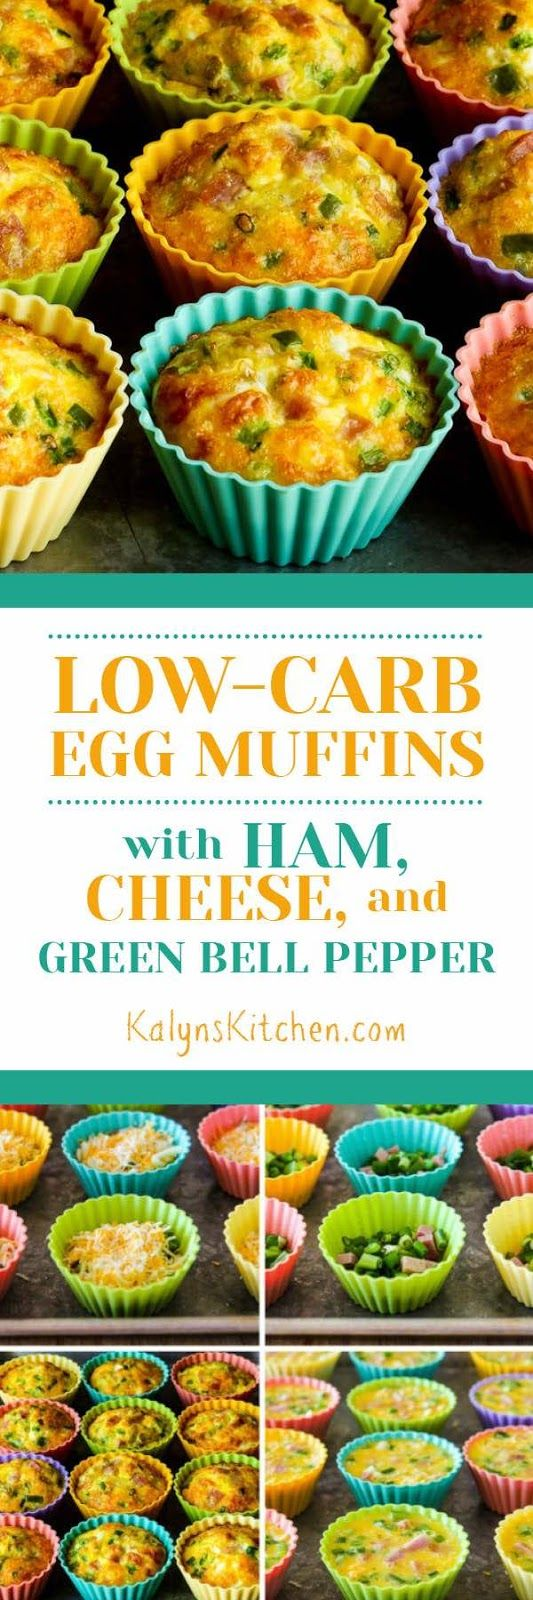 I've been making Low-Carb Egg Muffins like this since 2005 for a quick…